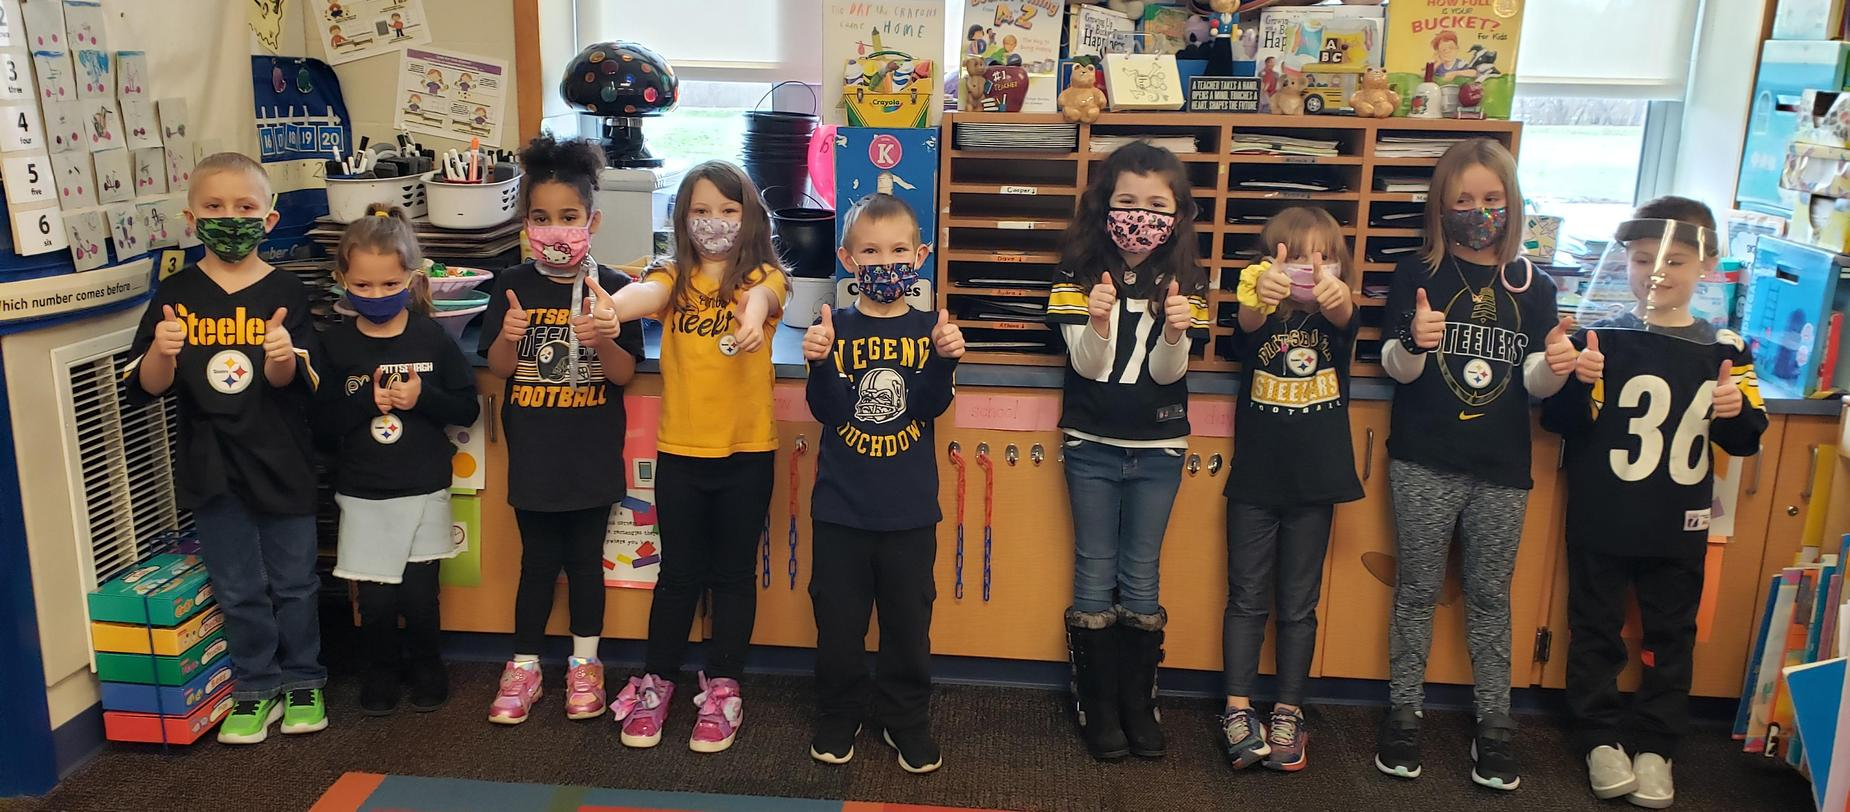 students wearing Pittsburgh Steeler shirts